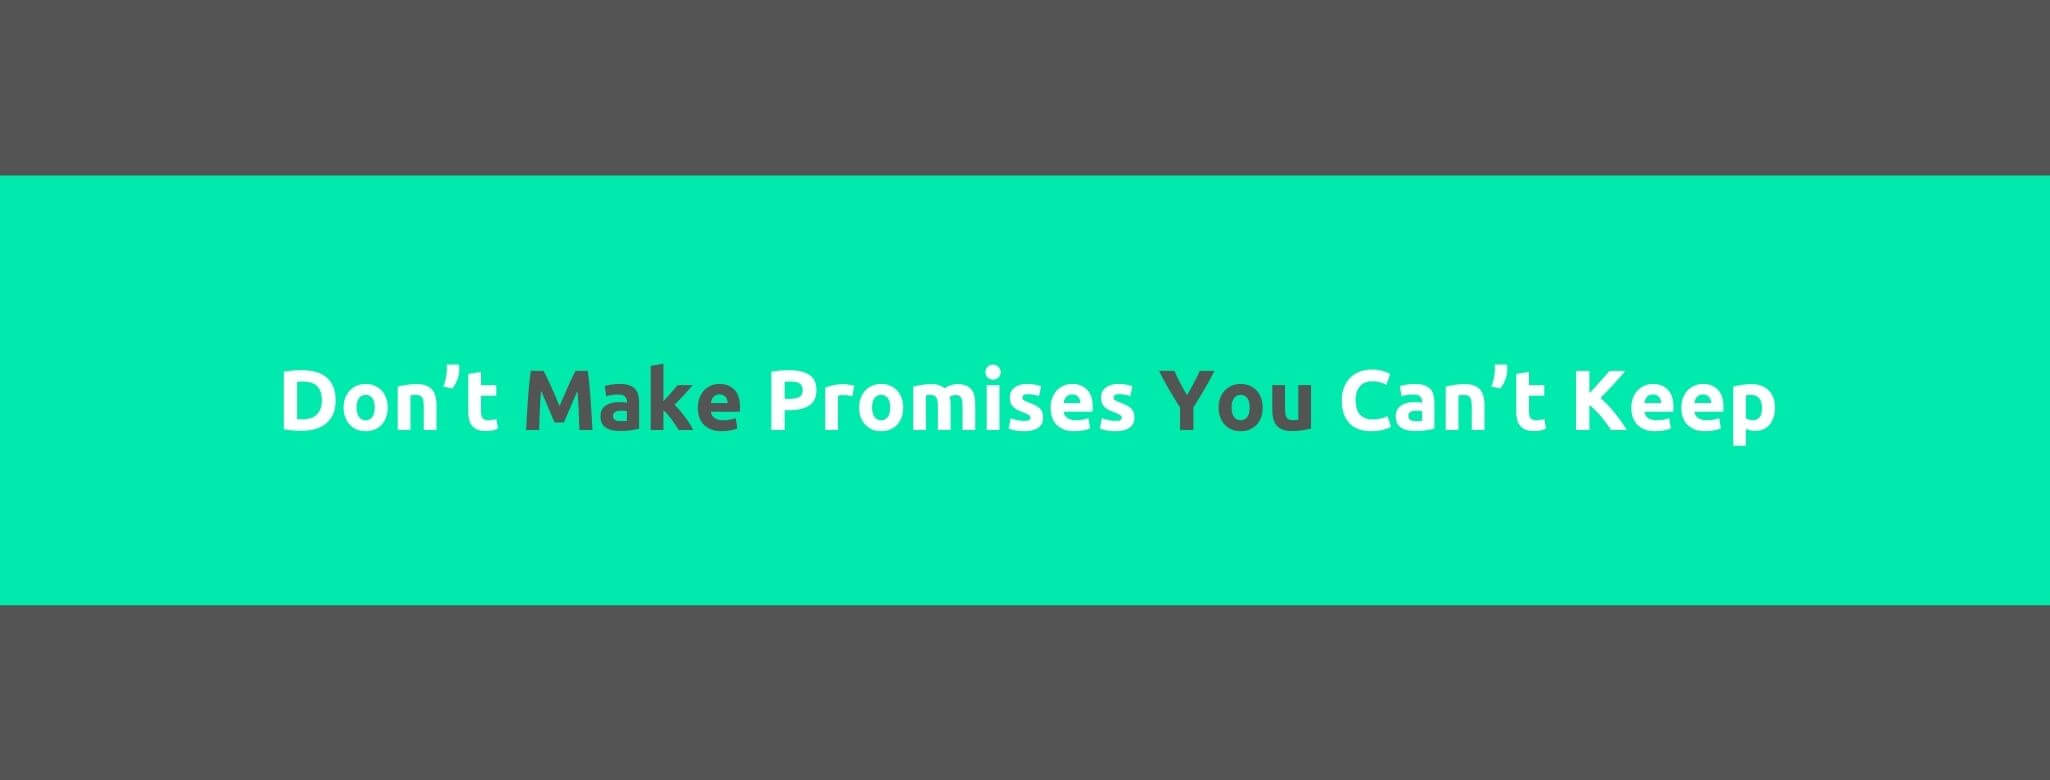 Don't Make Promises You Can't Keep - 25 Rules for Great Customer Service - Replyco Helpdesk Software for eCommerce